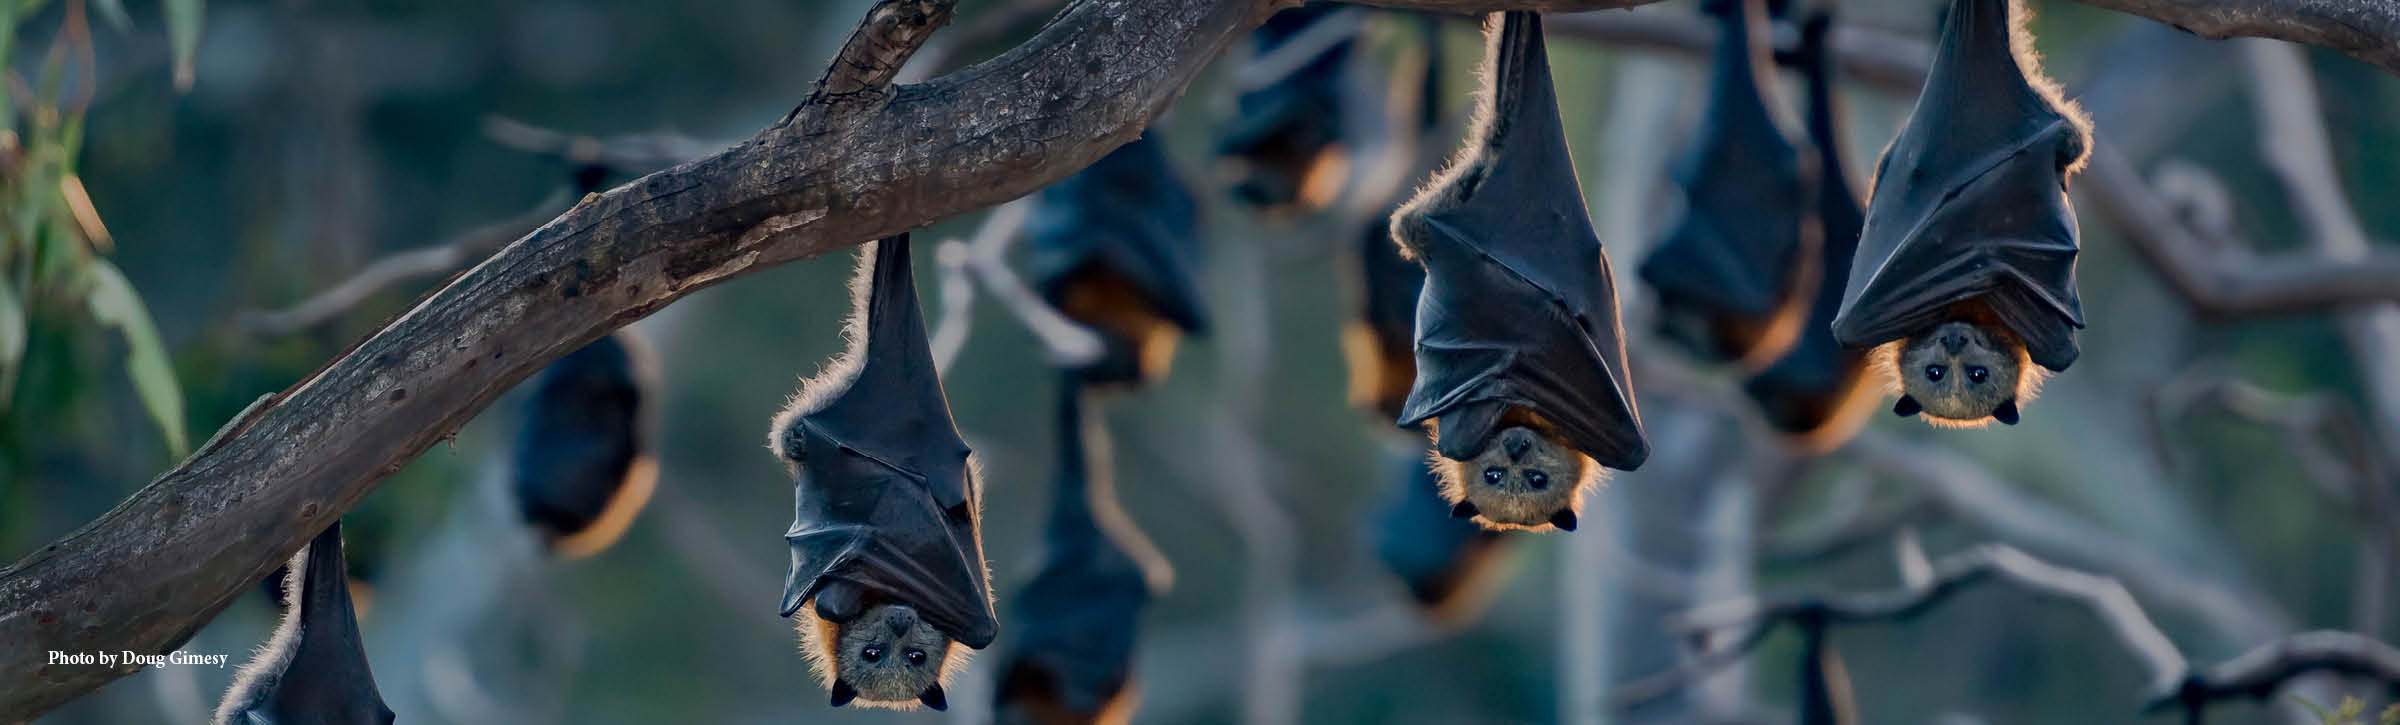 Grey-headed-flying-fox-banner-1800x544px.jpg